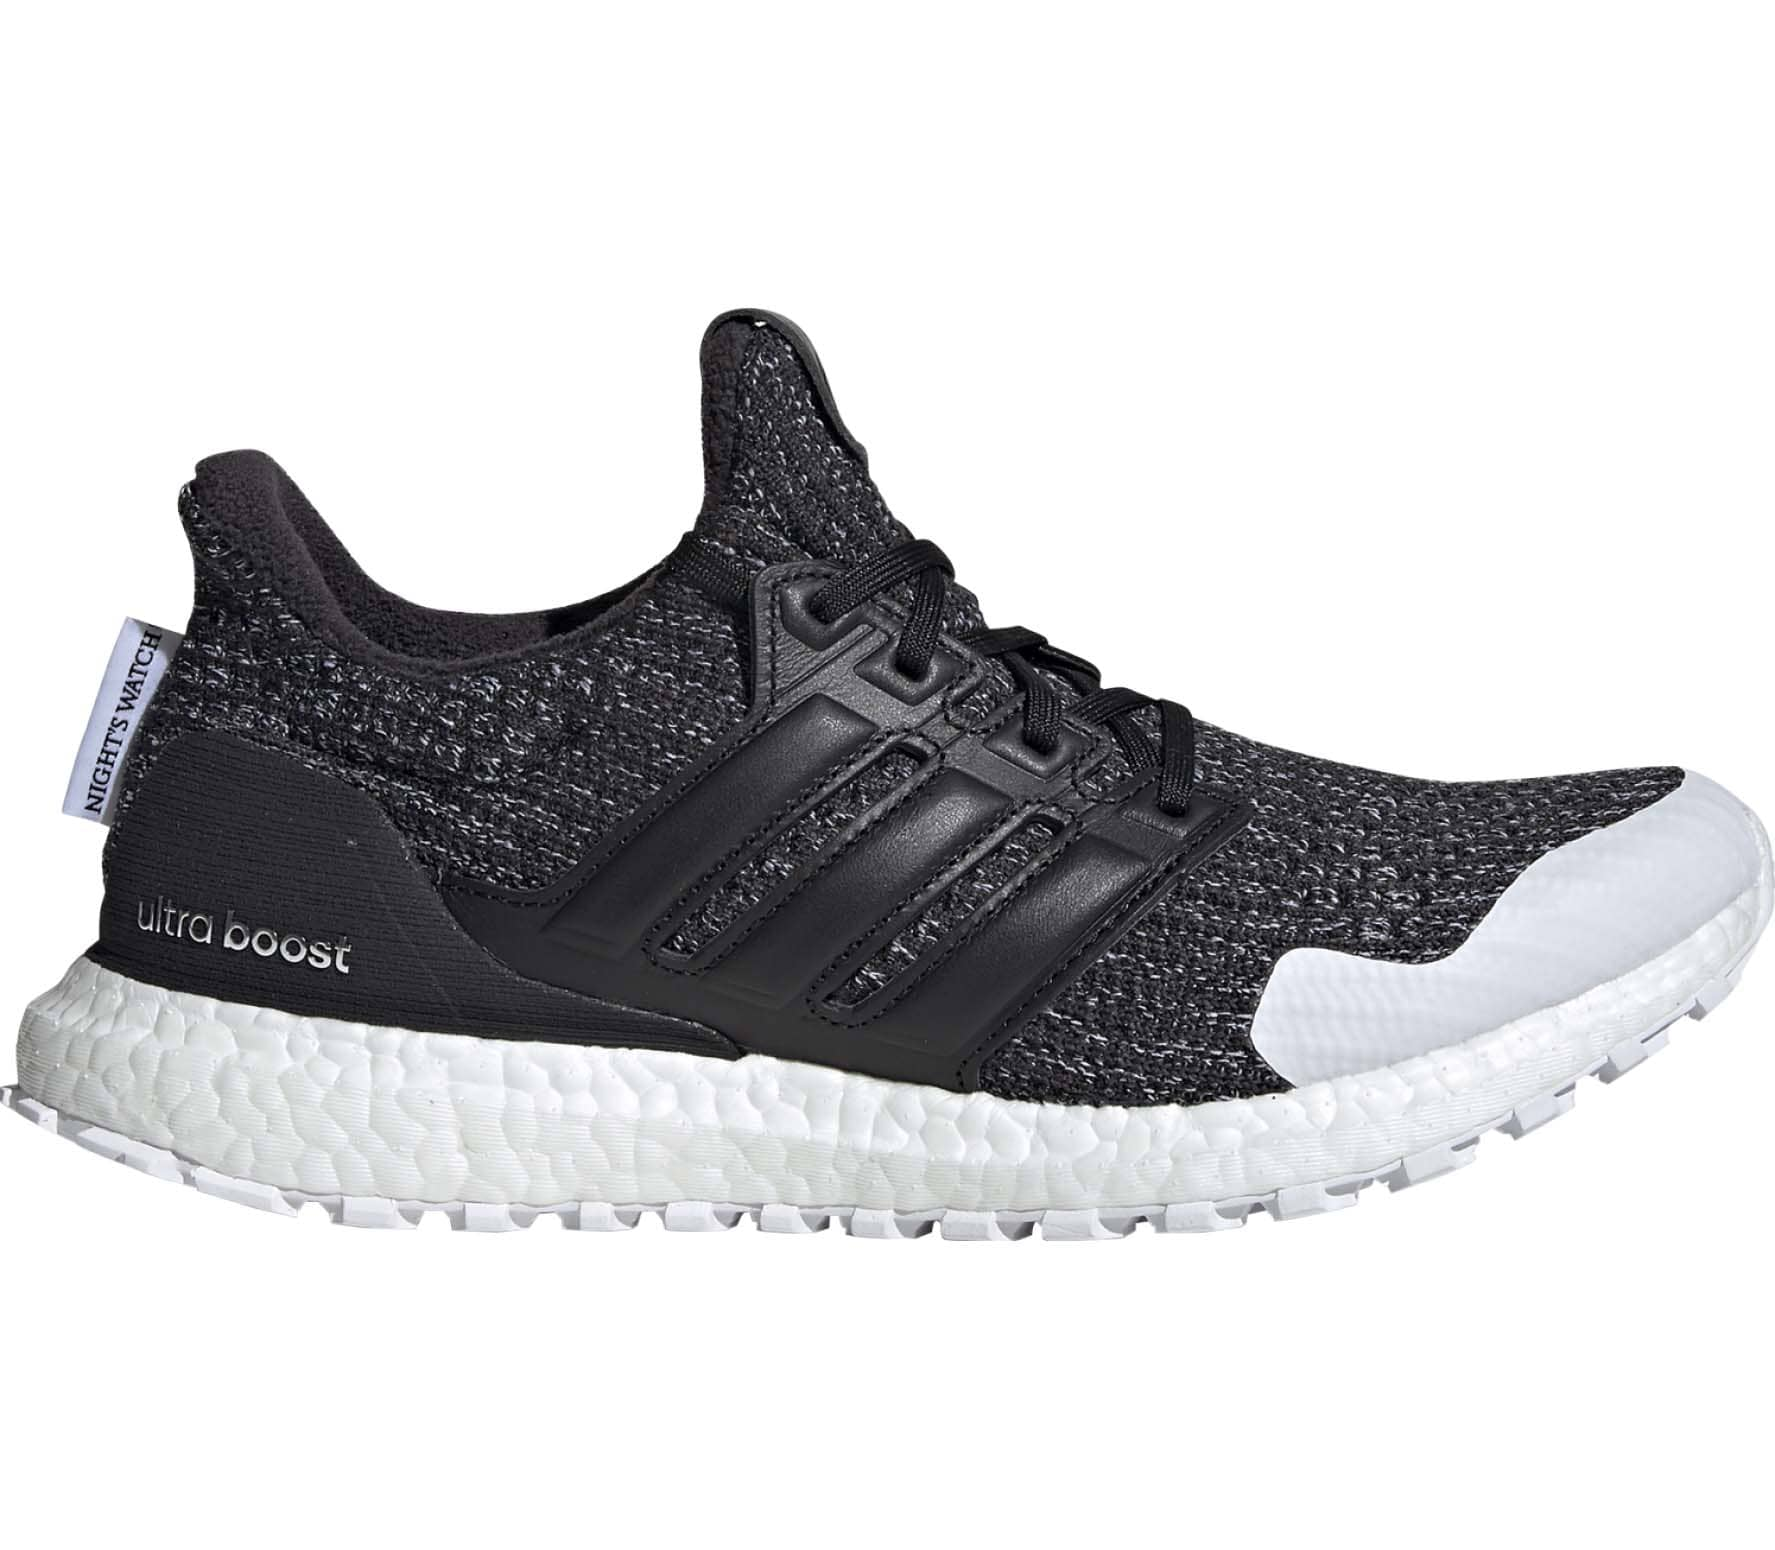 adidas X Game of Thrones Ultraboost The Night's Watch Unisex Sneaker